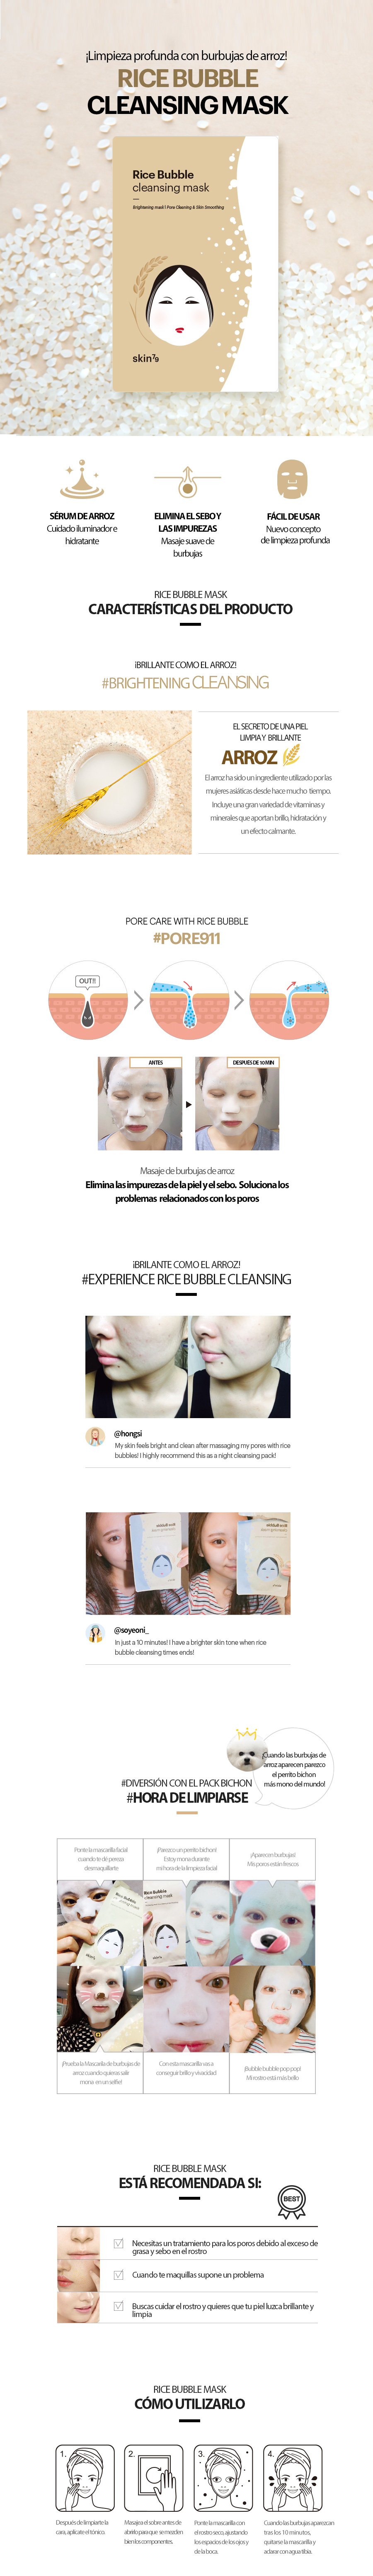 _-Rice-Bubble-Cleansing-Mask